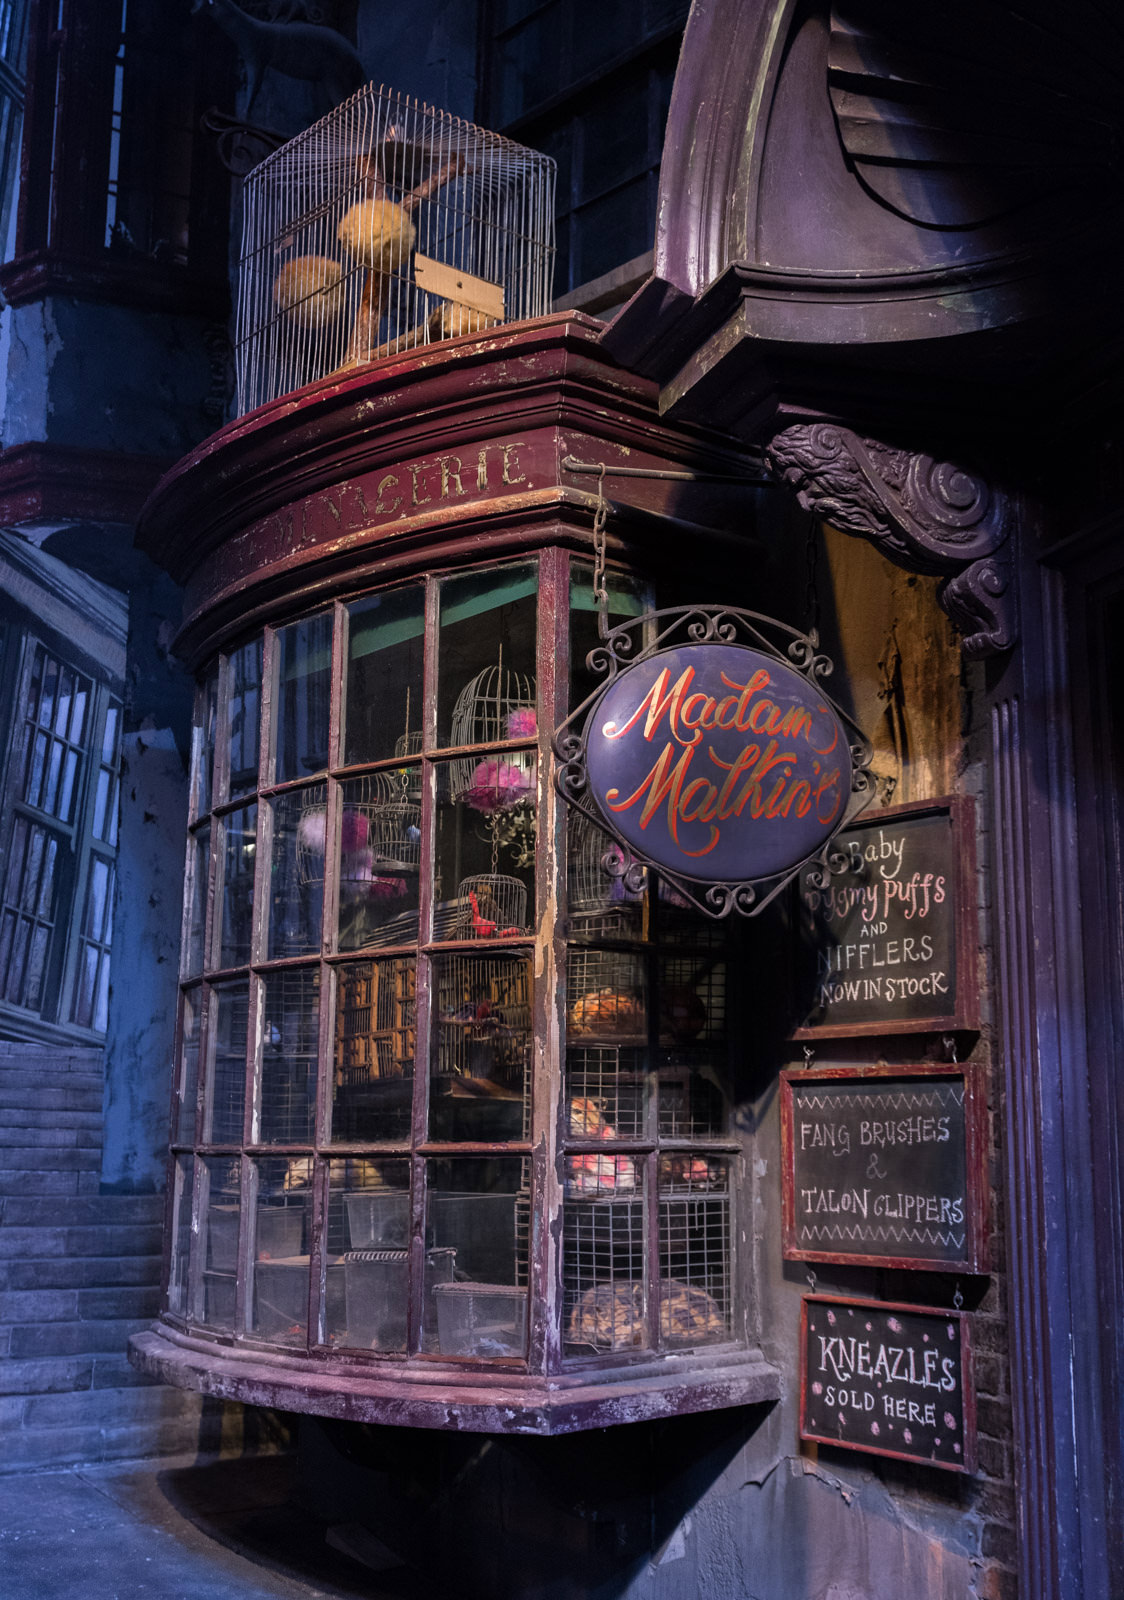 Blog-Mode-And-The-City-Lifestyle-Visite-Studios-Harry-Potter-Londres-29